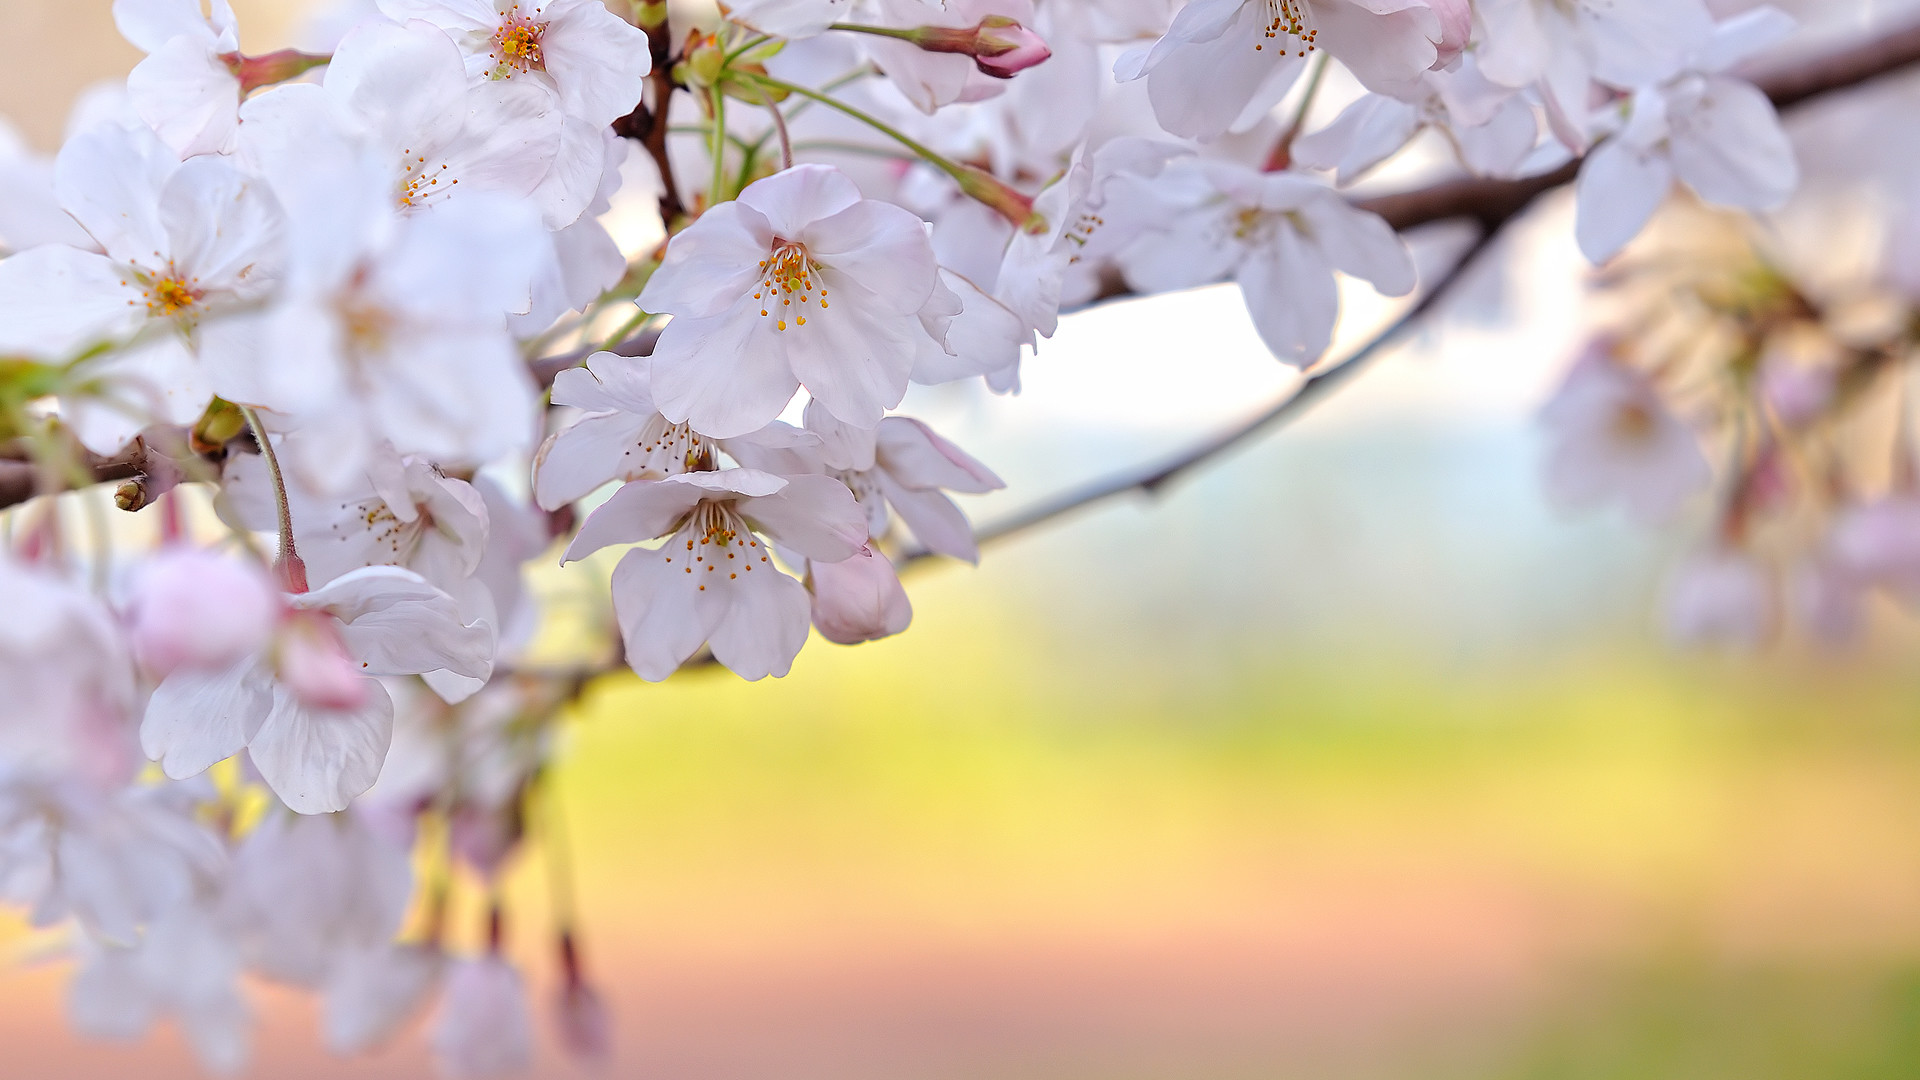 Sakura flower wallpaper images all free download